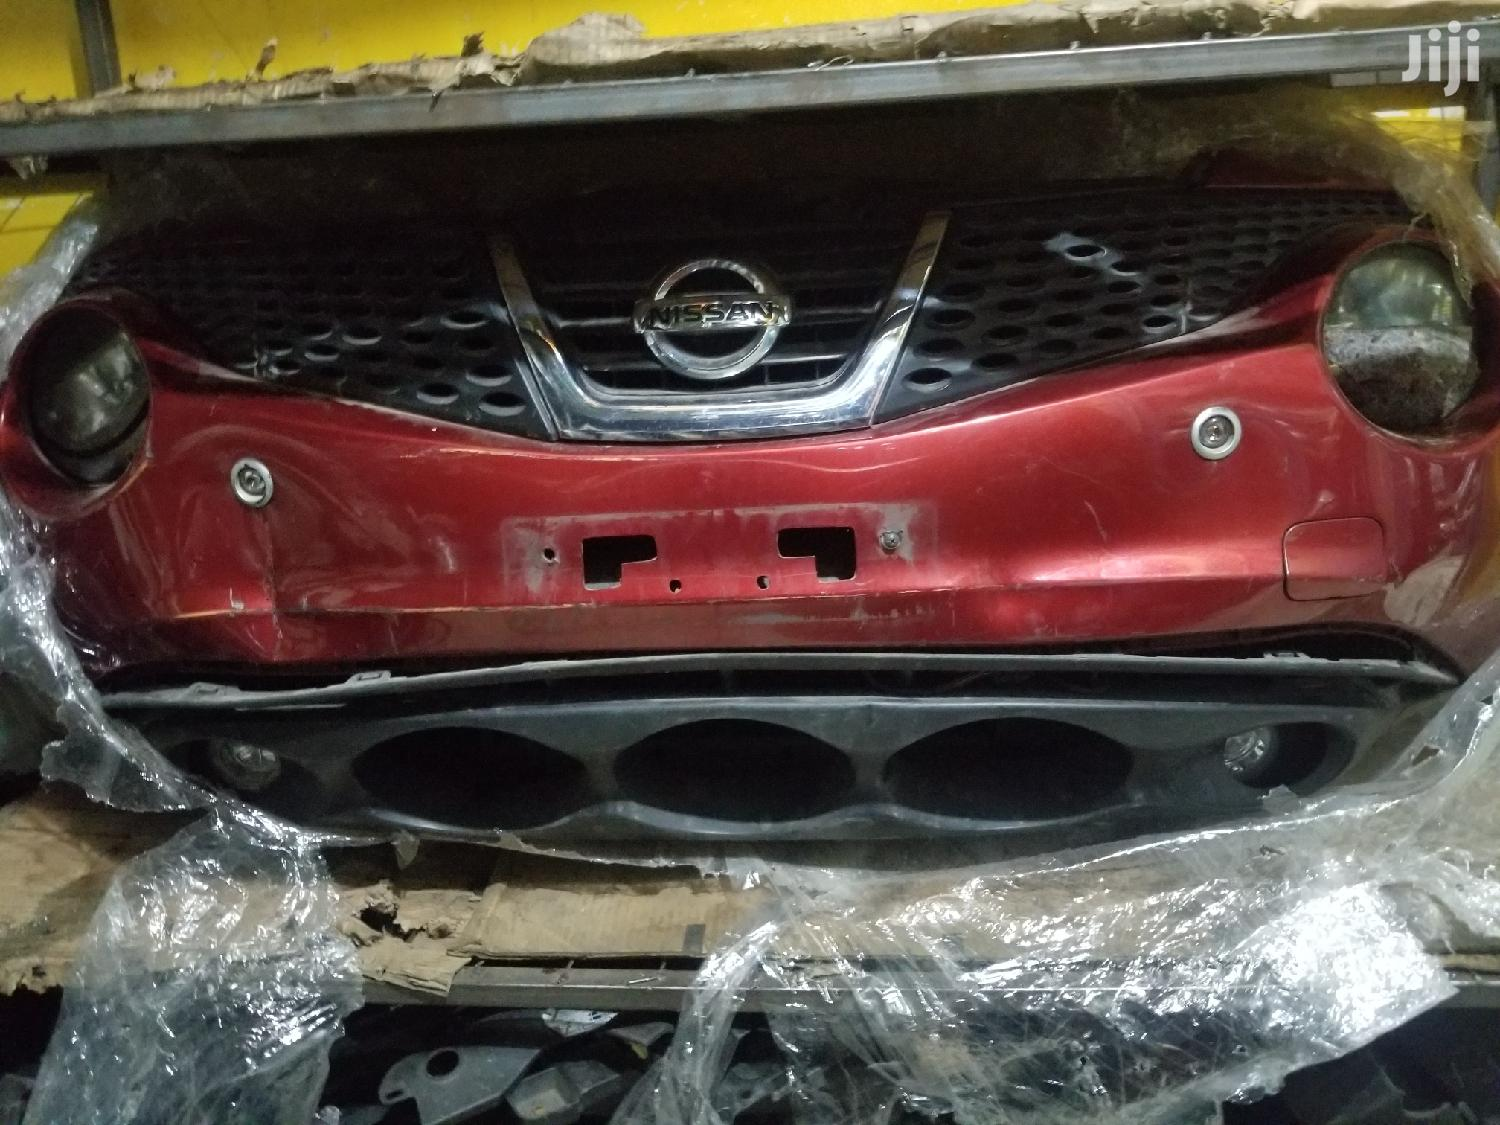 New Stock Taking On Nissan Juke 2010 Nosecut Auto Car Body Parts